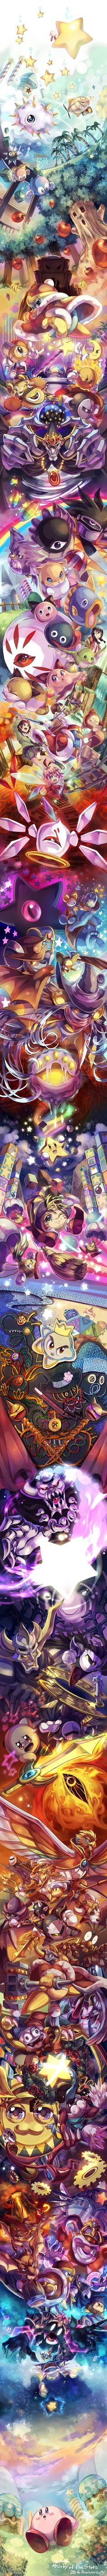 Kirby of the Stars <--- Oh my gosh, now I have an awesome Zelda 25th anniversary banner artwork AND a Kirby 20th anniversary banner artwork.